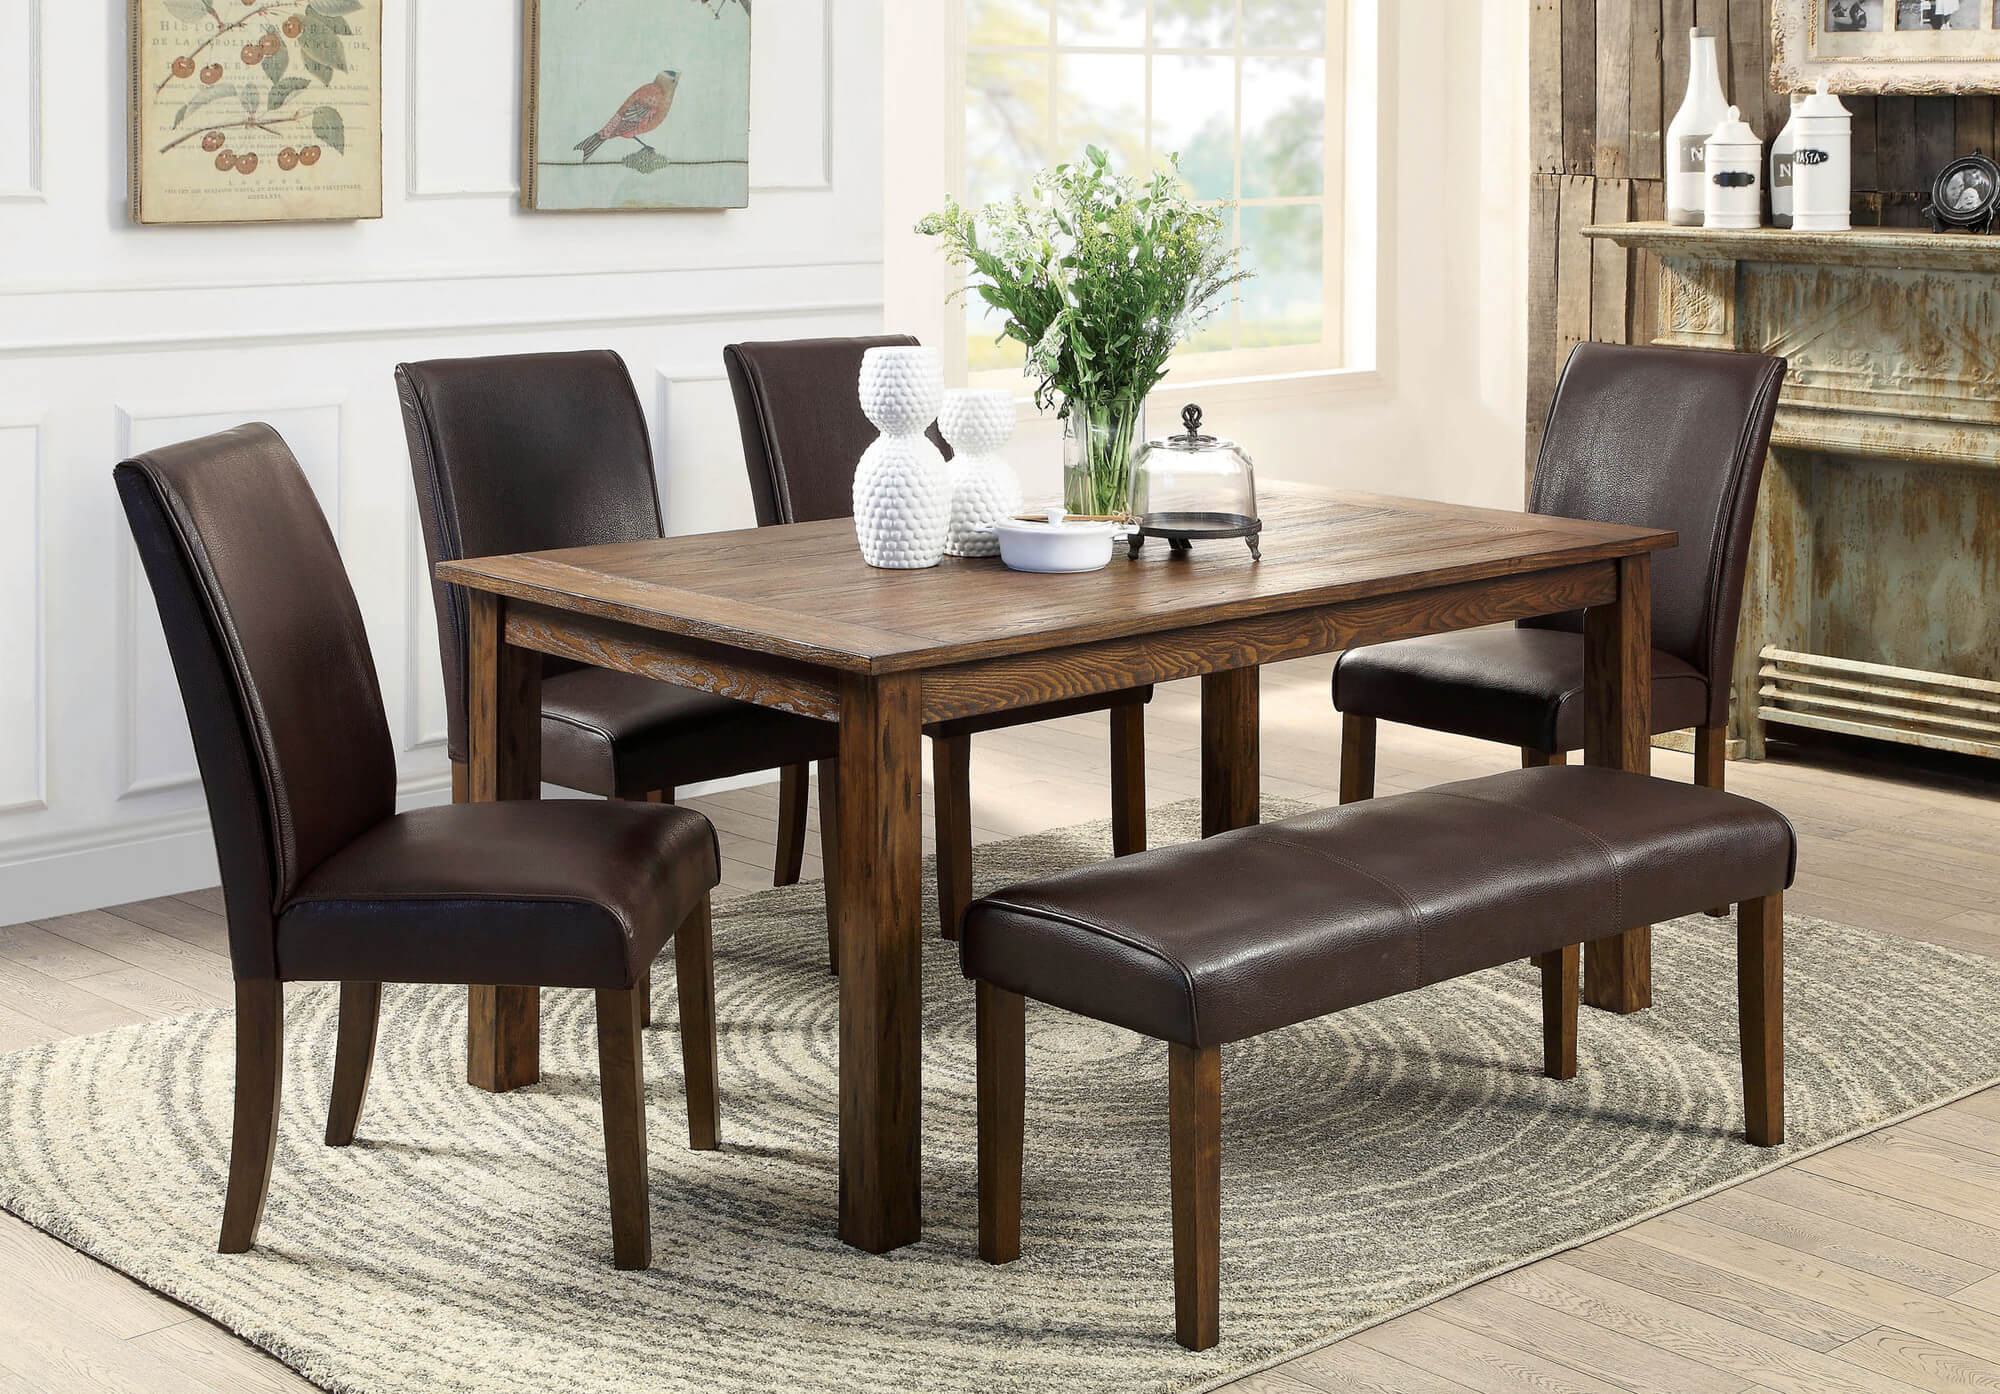 Here s a rustic rectangle dining table with fully cushioned chairs and  bench  This look works. 26 Big   Small Dining Room Sets with Bench Seating